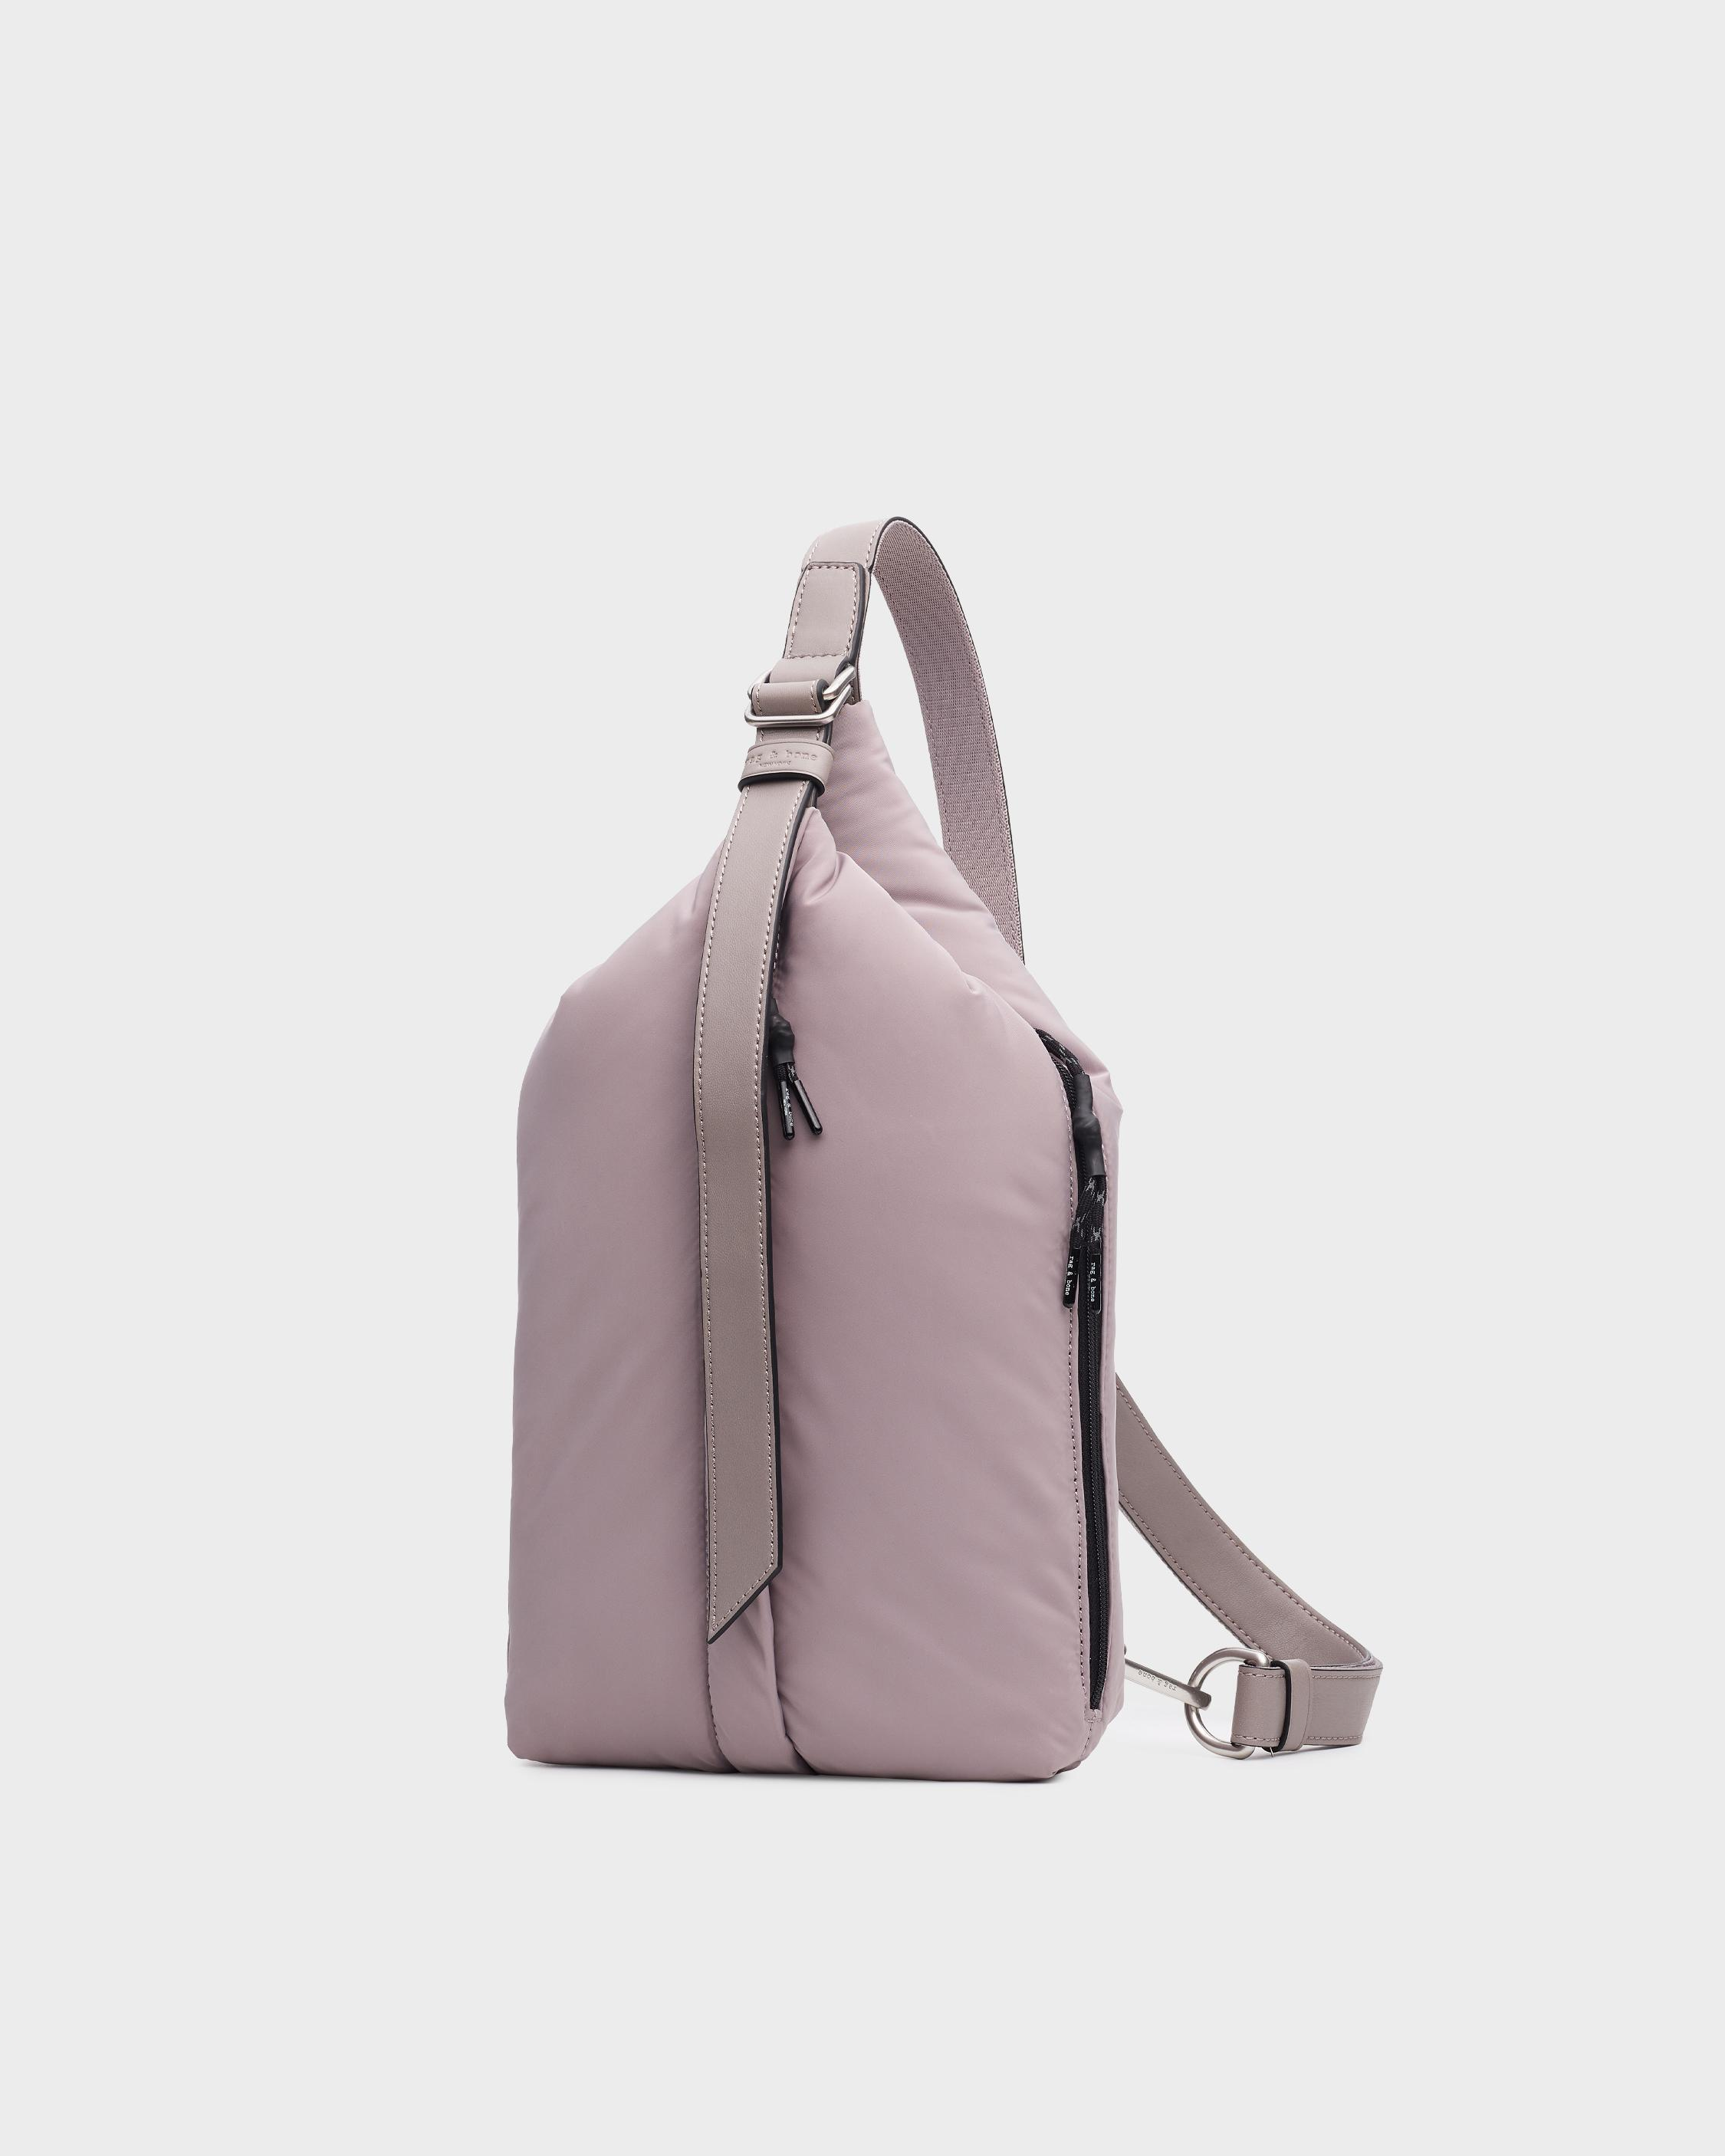 Revival sling - recycled materials and vegan leather